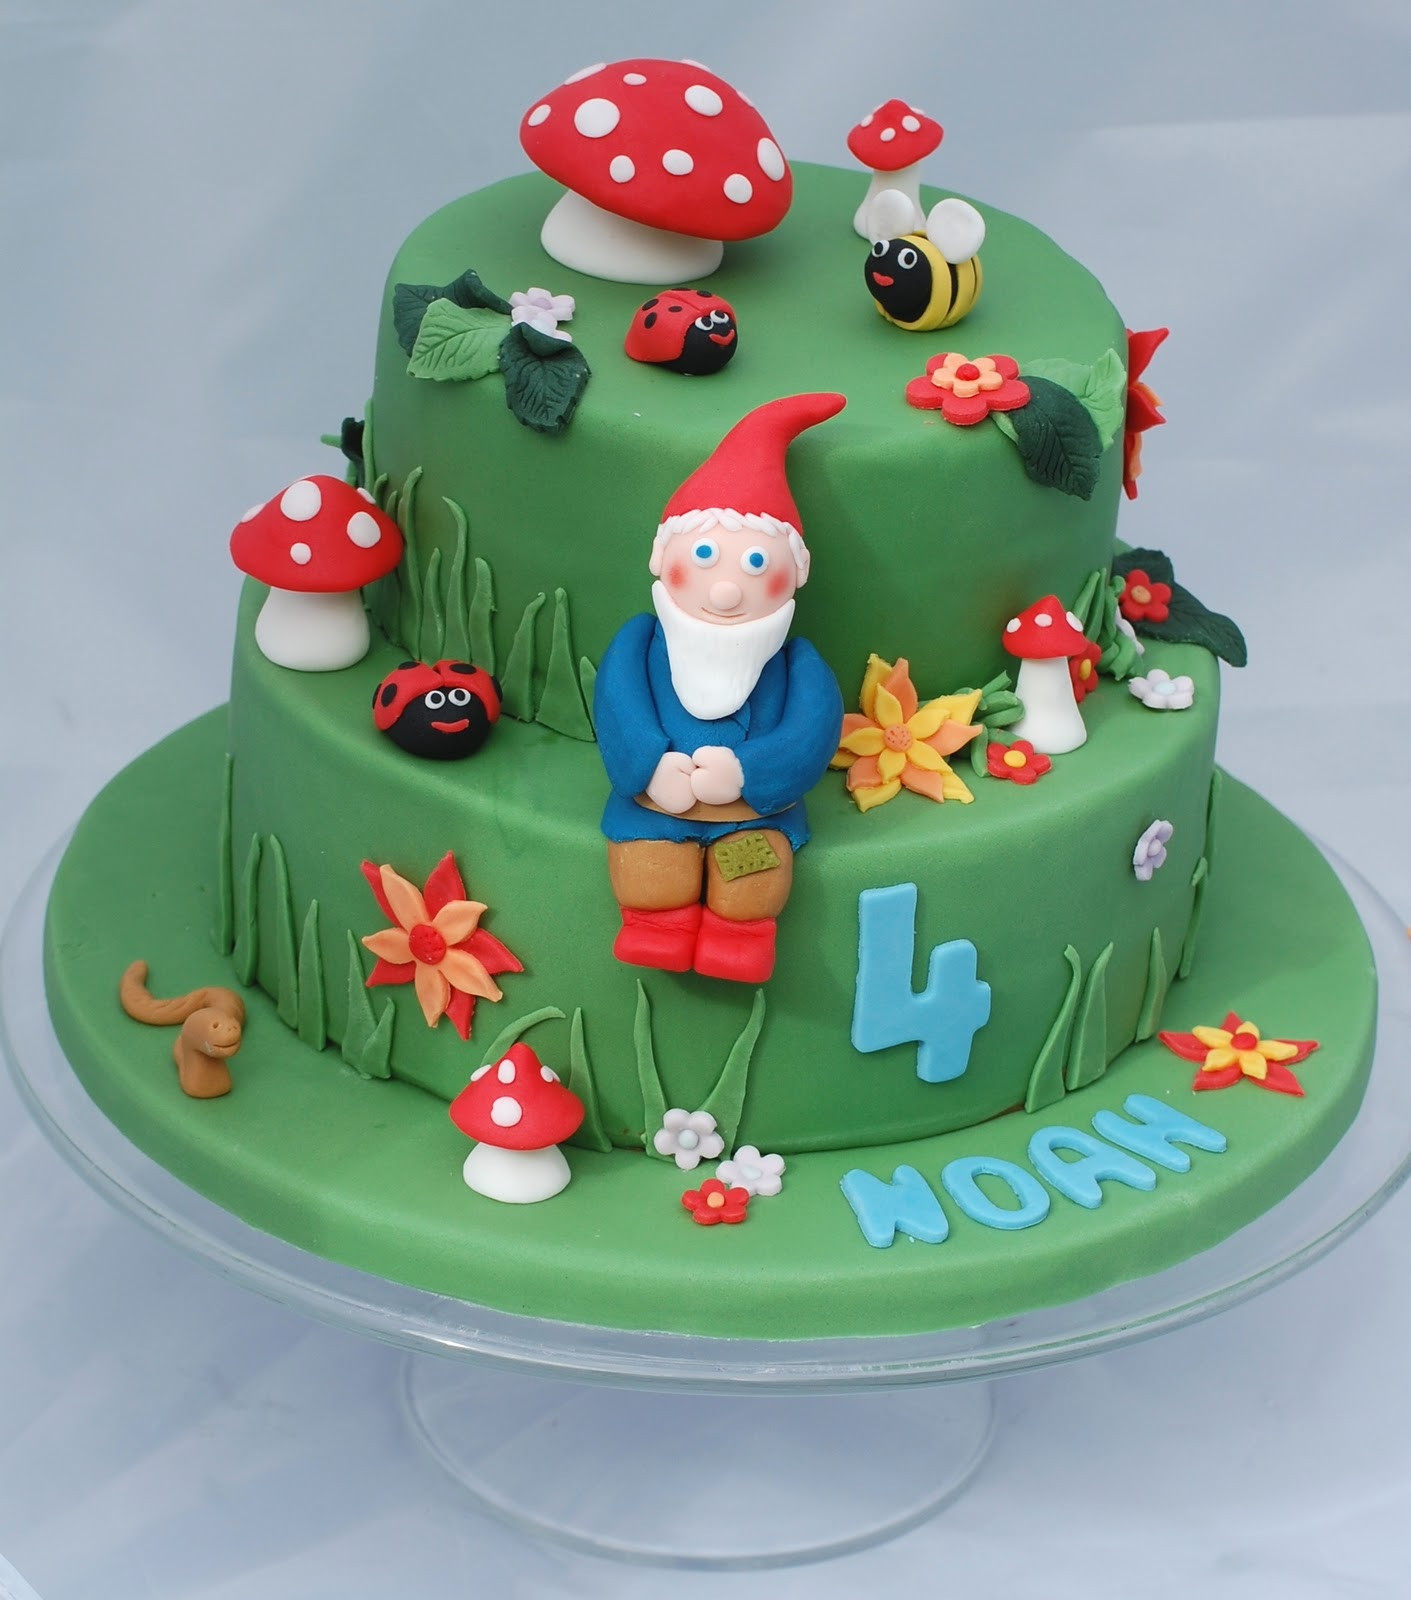 A Birthday Cake for my Boy the Gnomes Garden Vanilla Frost Cakes